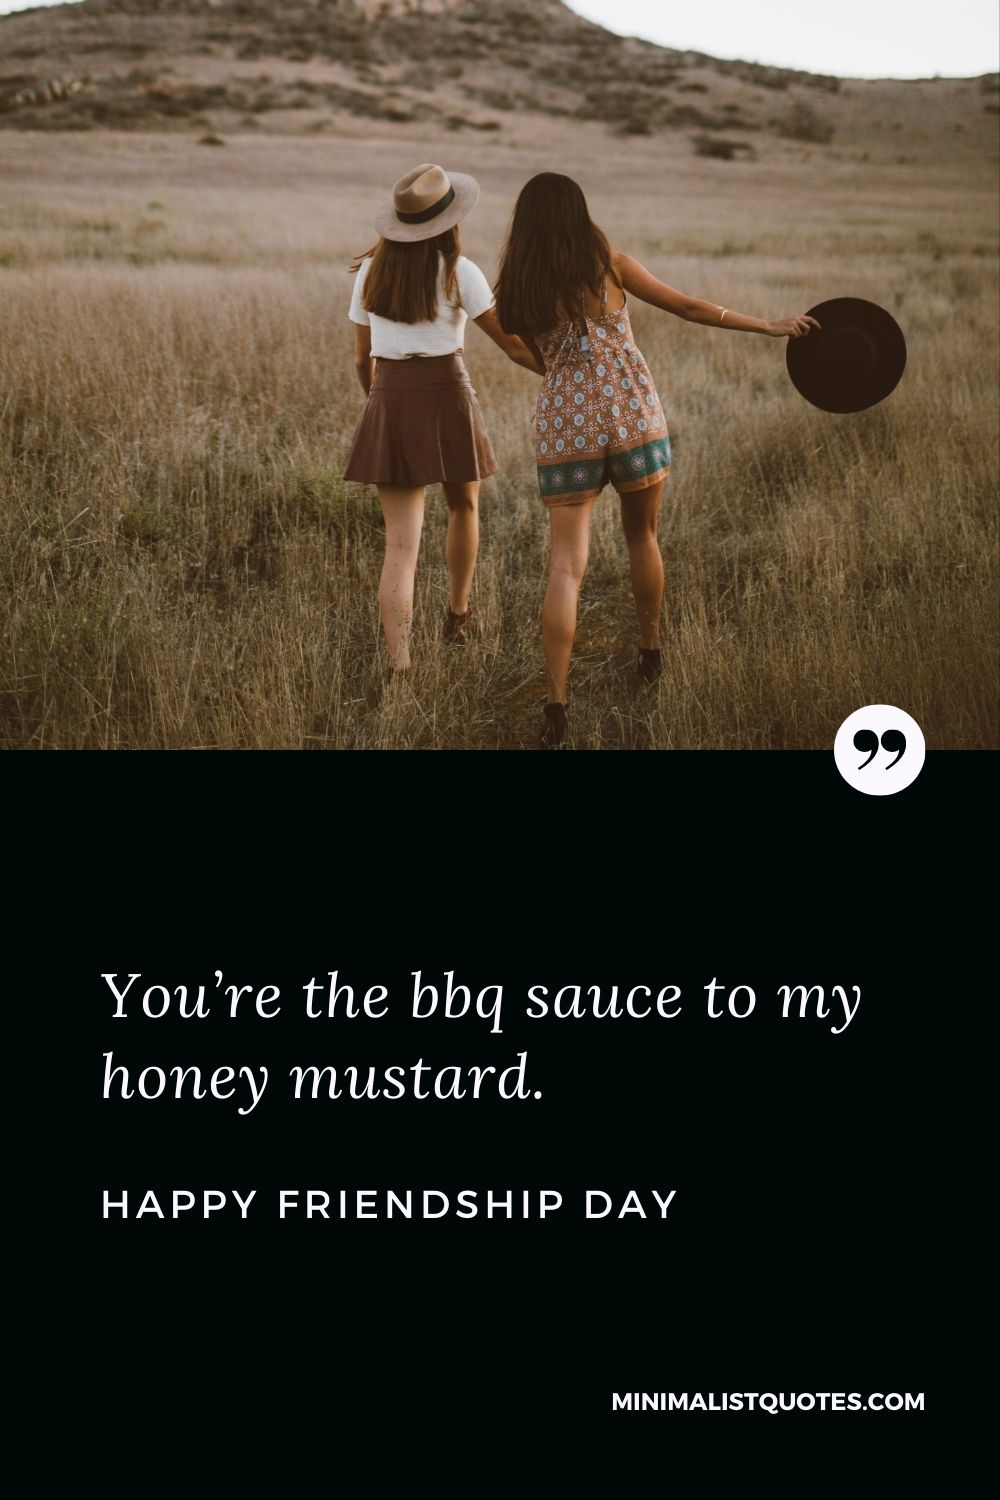 Friendship day wish, message & quote with HD image: You're the bbq sauce to my honey mustard. Happy Friendship Day!